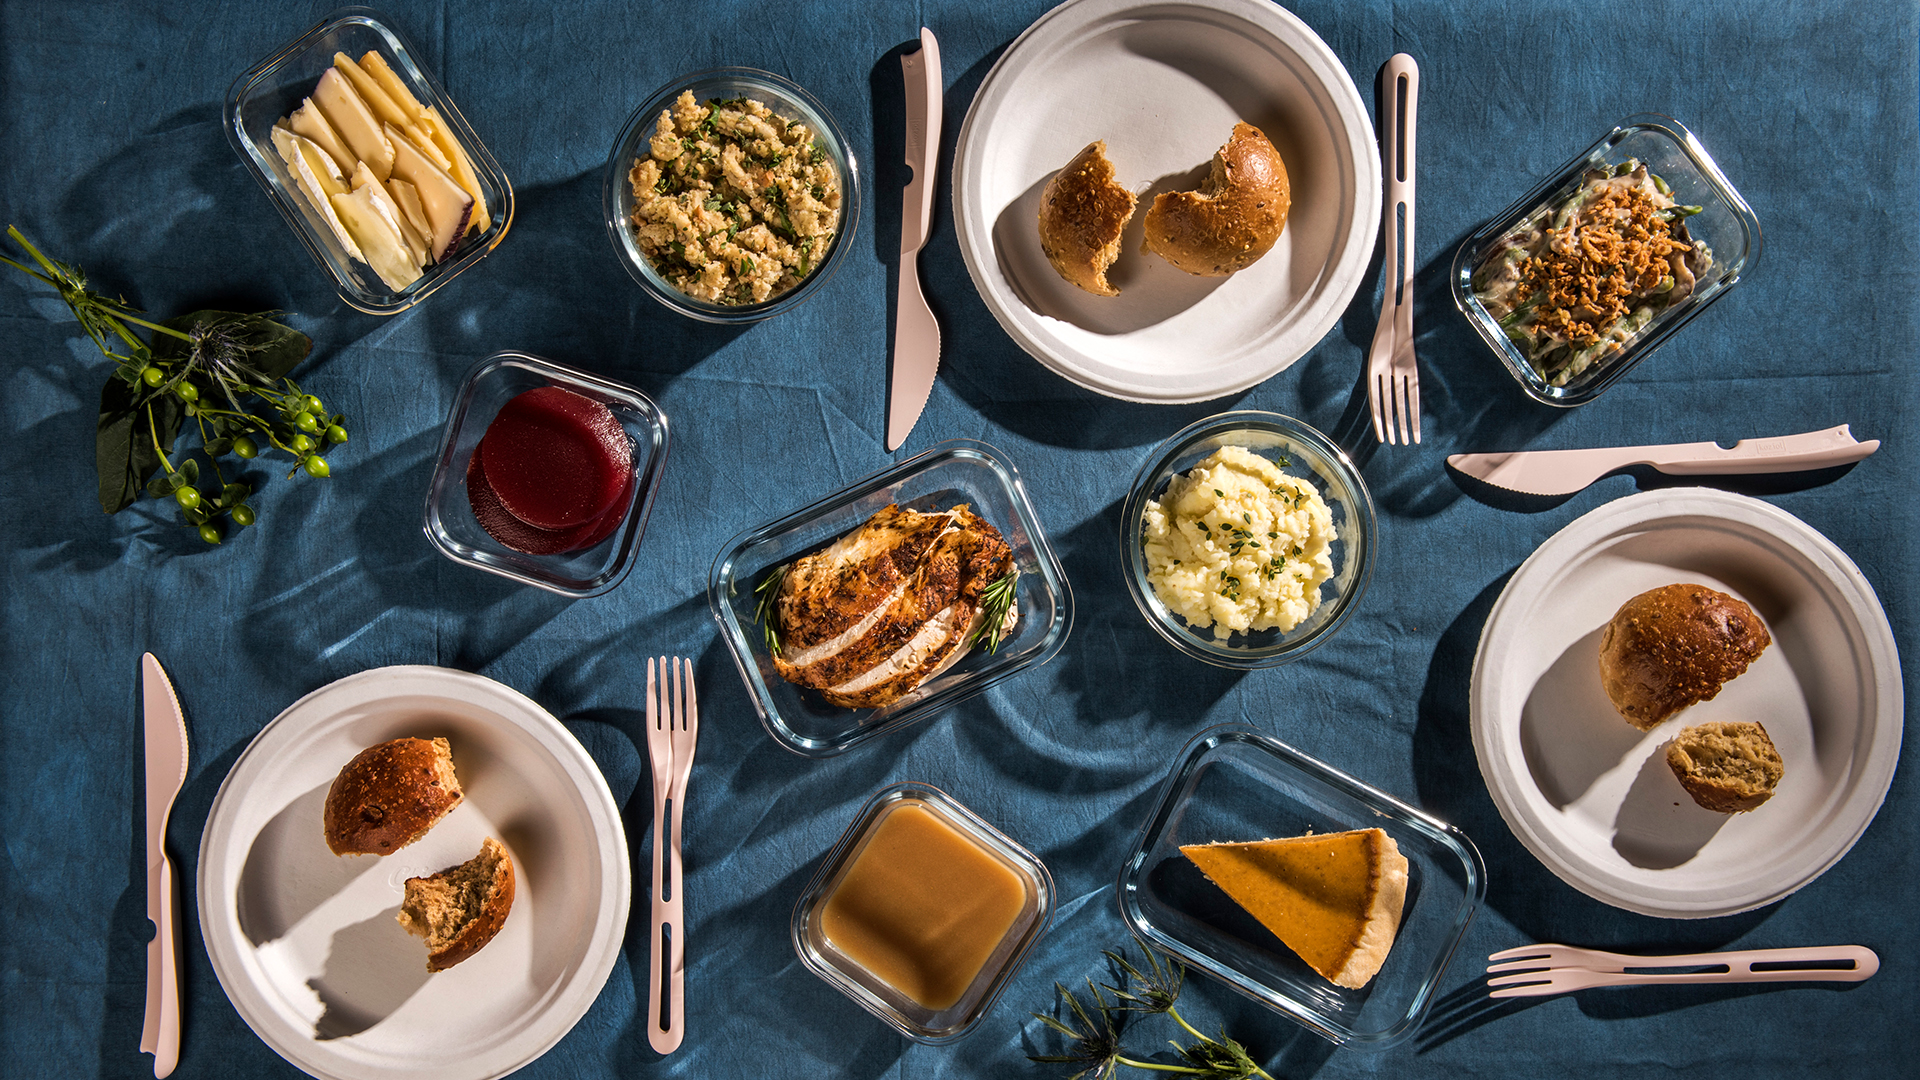 The holiday foods you can and can't bring in a carry-on, according to TSA